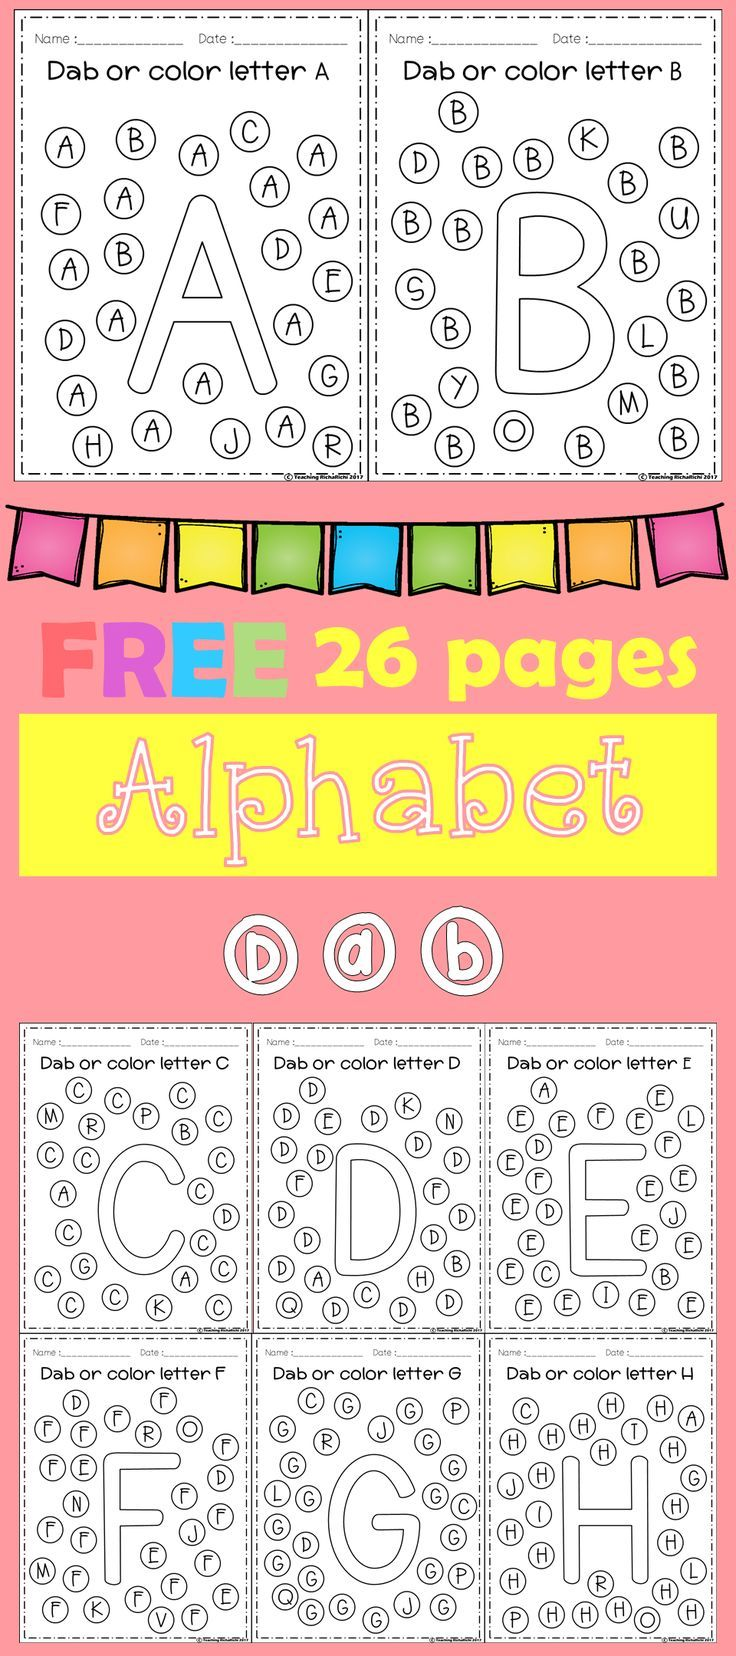 Kinder Garden: FREE Freebies Alphabet Dap A-Z 26 Pages. For PreK And